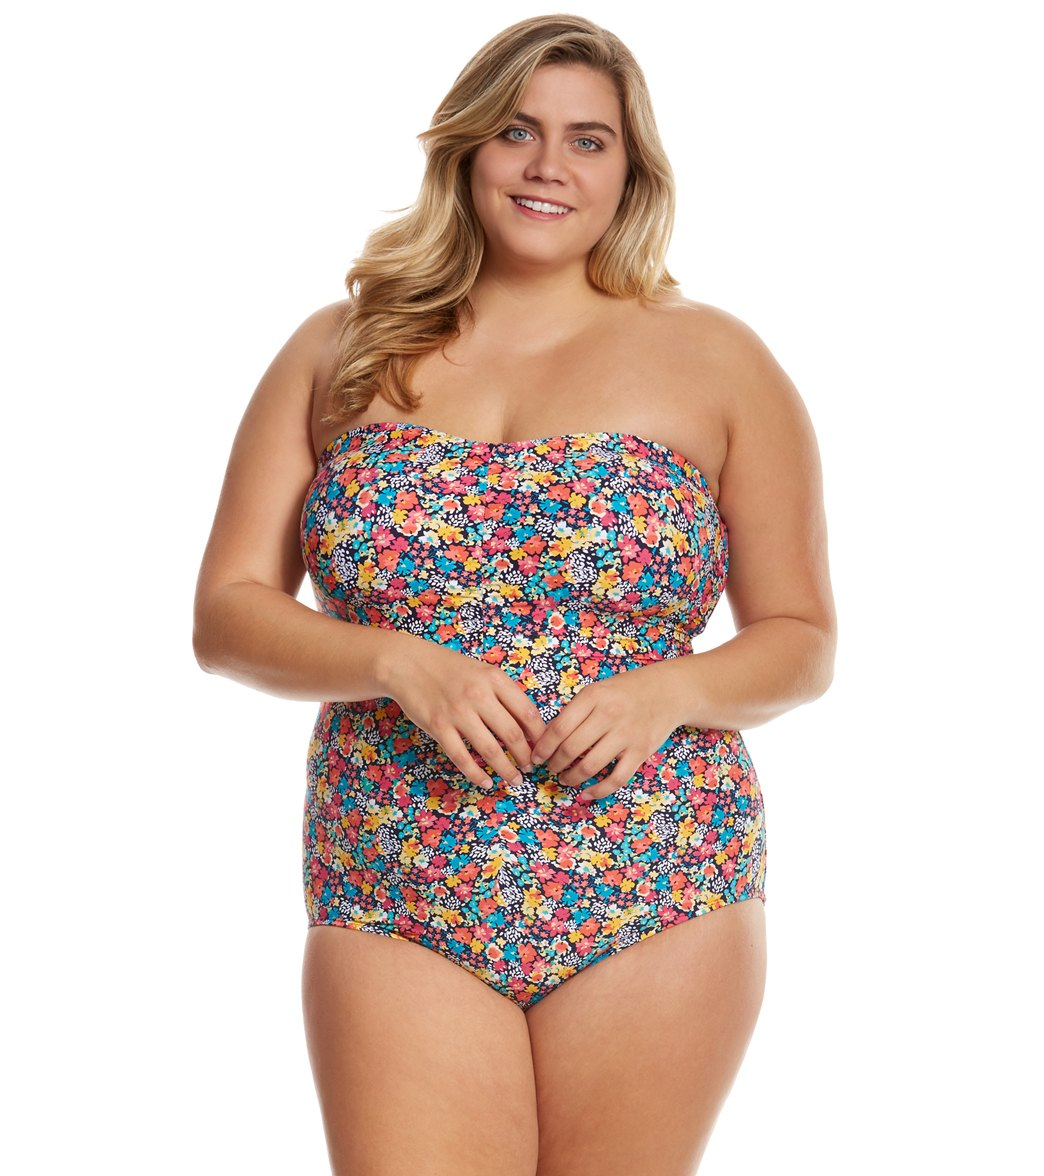 ab5653f1212 Anne Cole Signature Plus Size Budding Romance Shirred Bandeau One Piece  Swimsuit at SwimOutlet.com - Free Shipping